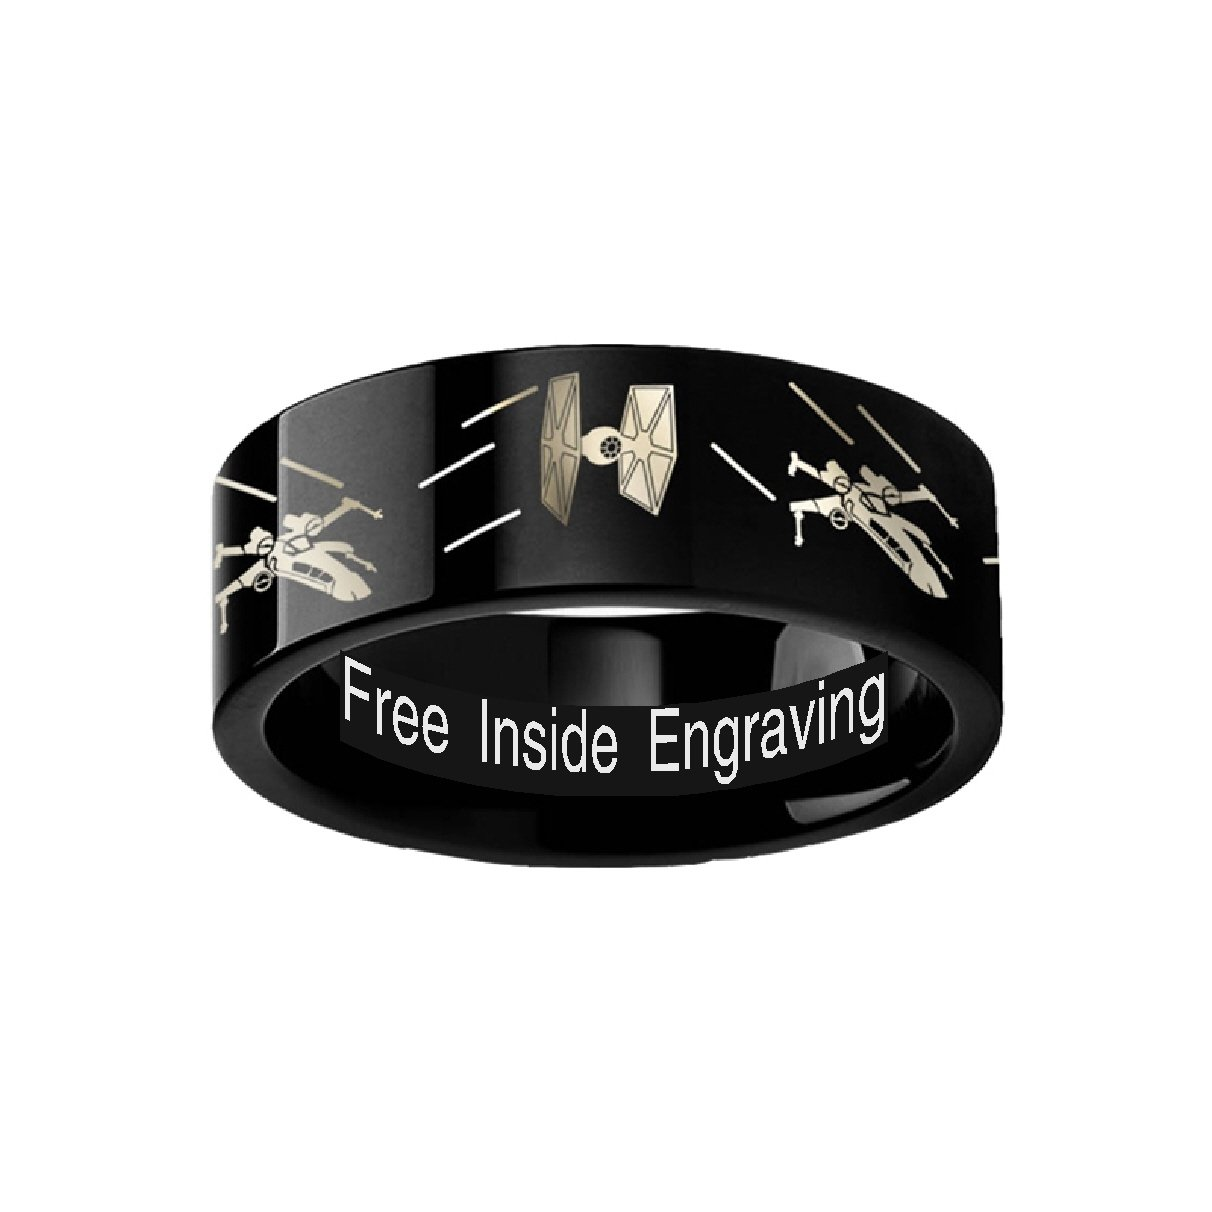 Thorsten Star Wars Tie Fighter X-Wing Design Ring 6mm Black Tungsten Wedding Band Ring Custom Personalized Inside Engraved from Roy Rose Jewelry